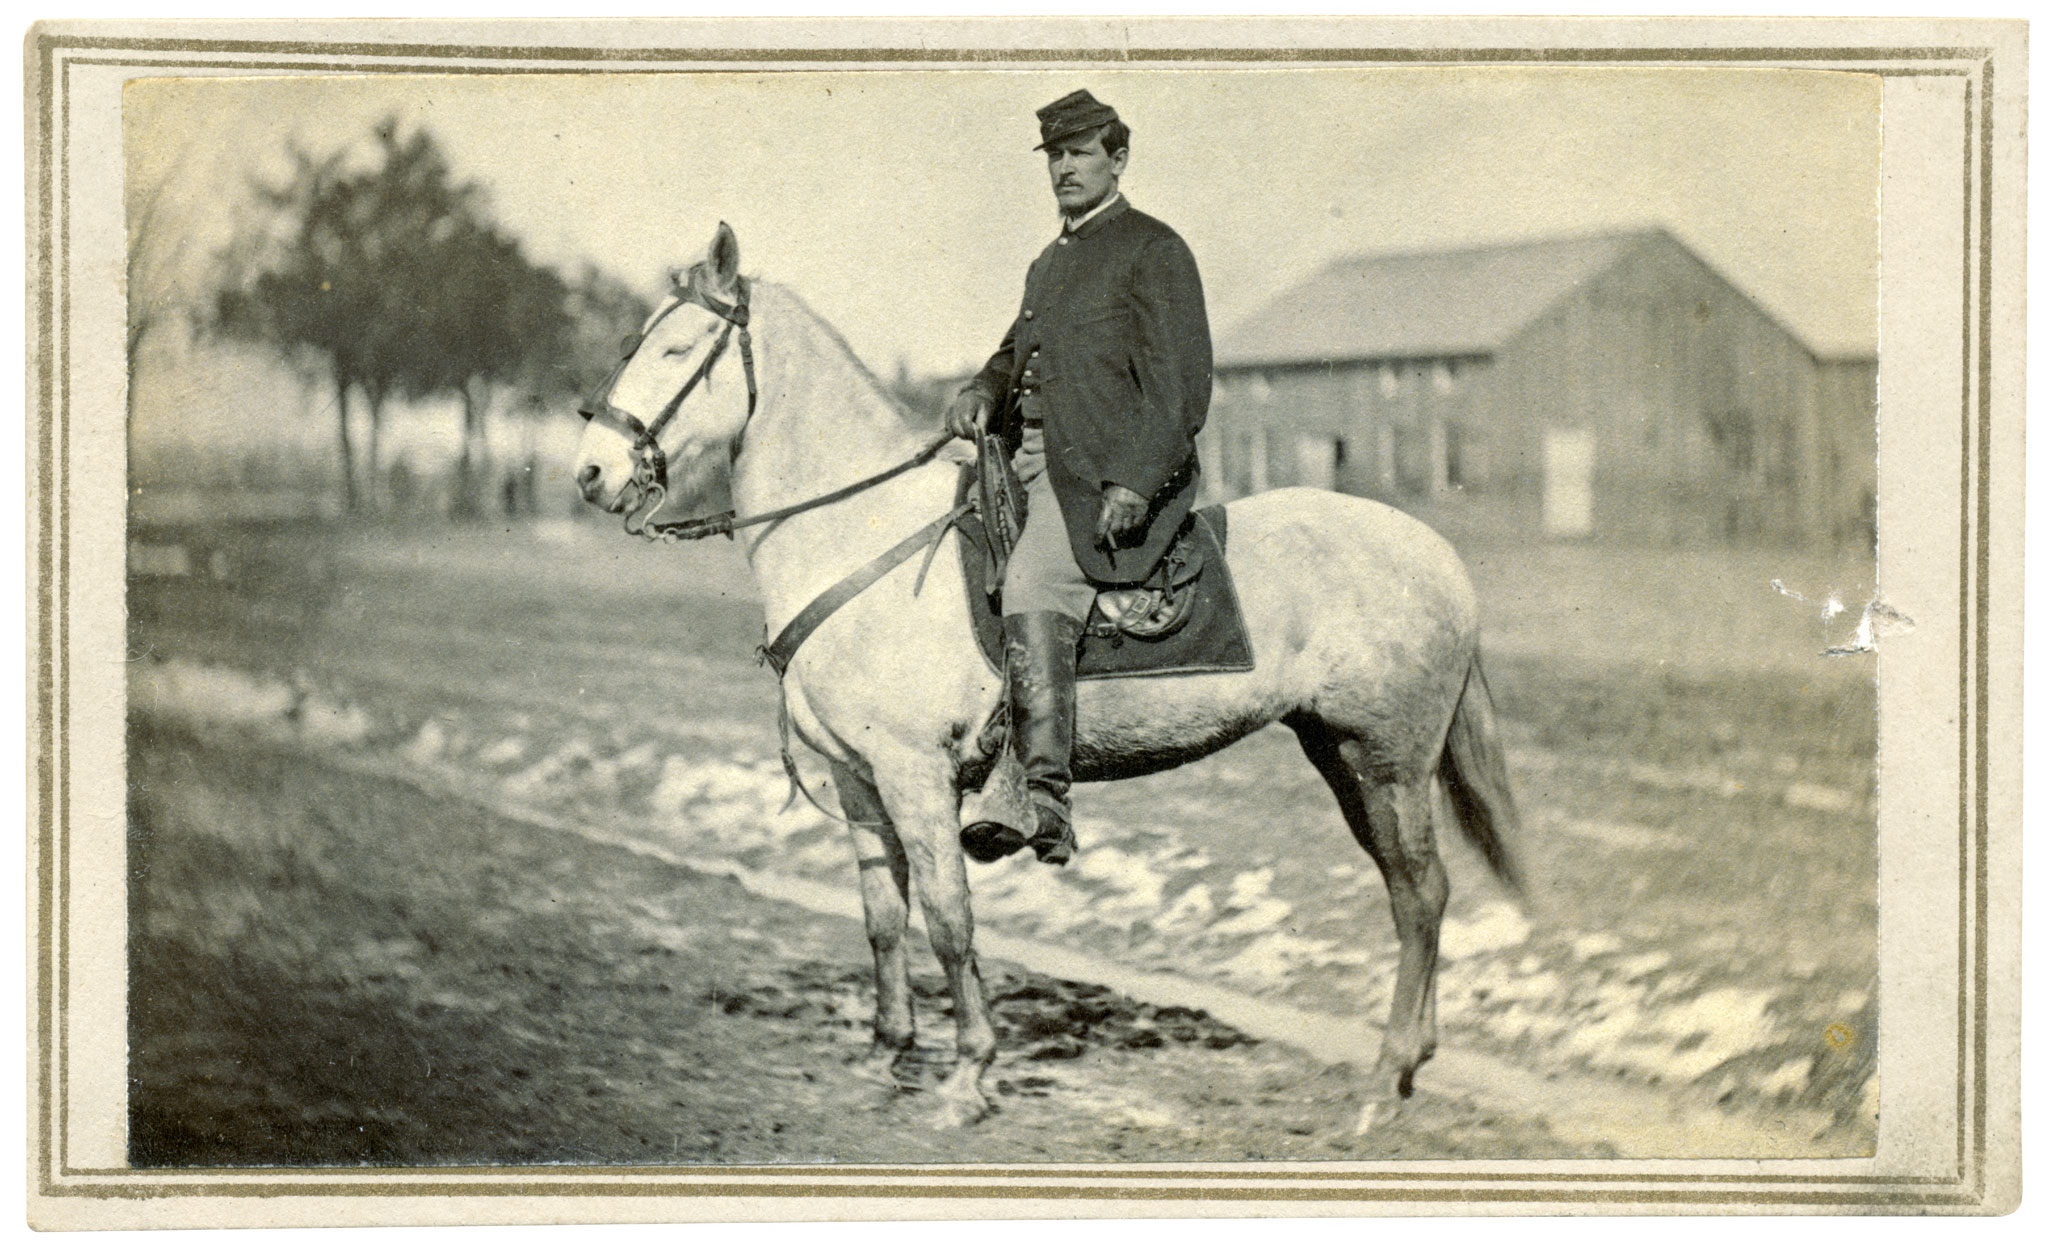 CYRUS CHADBOURN EMERY (1840-1896), a painter born in Roxbury, Mass., started the war in the 2nd Massachusetts Cavalry. He joined the 5th as a first lieutenant in January 1864 and ended his service in October 1865 as the regiment's major, though he never mustered as that rank.